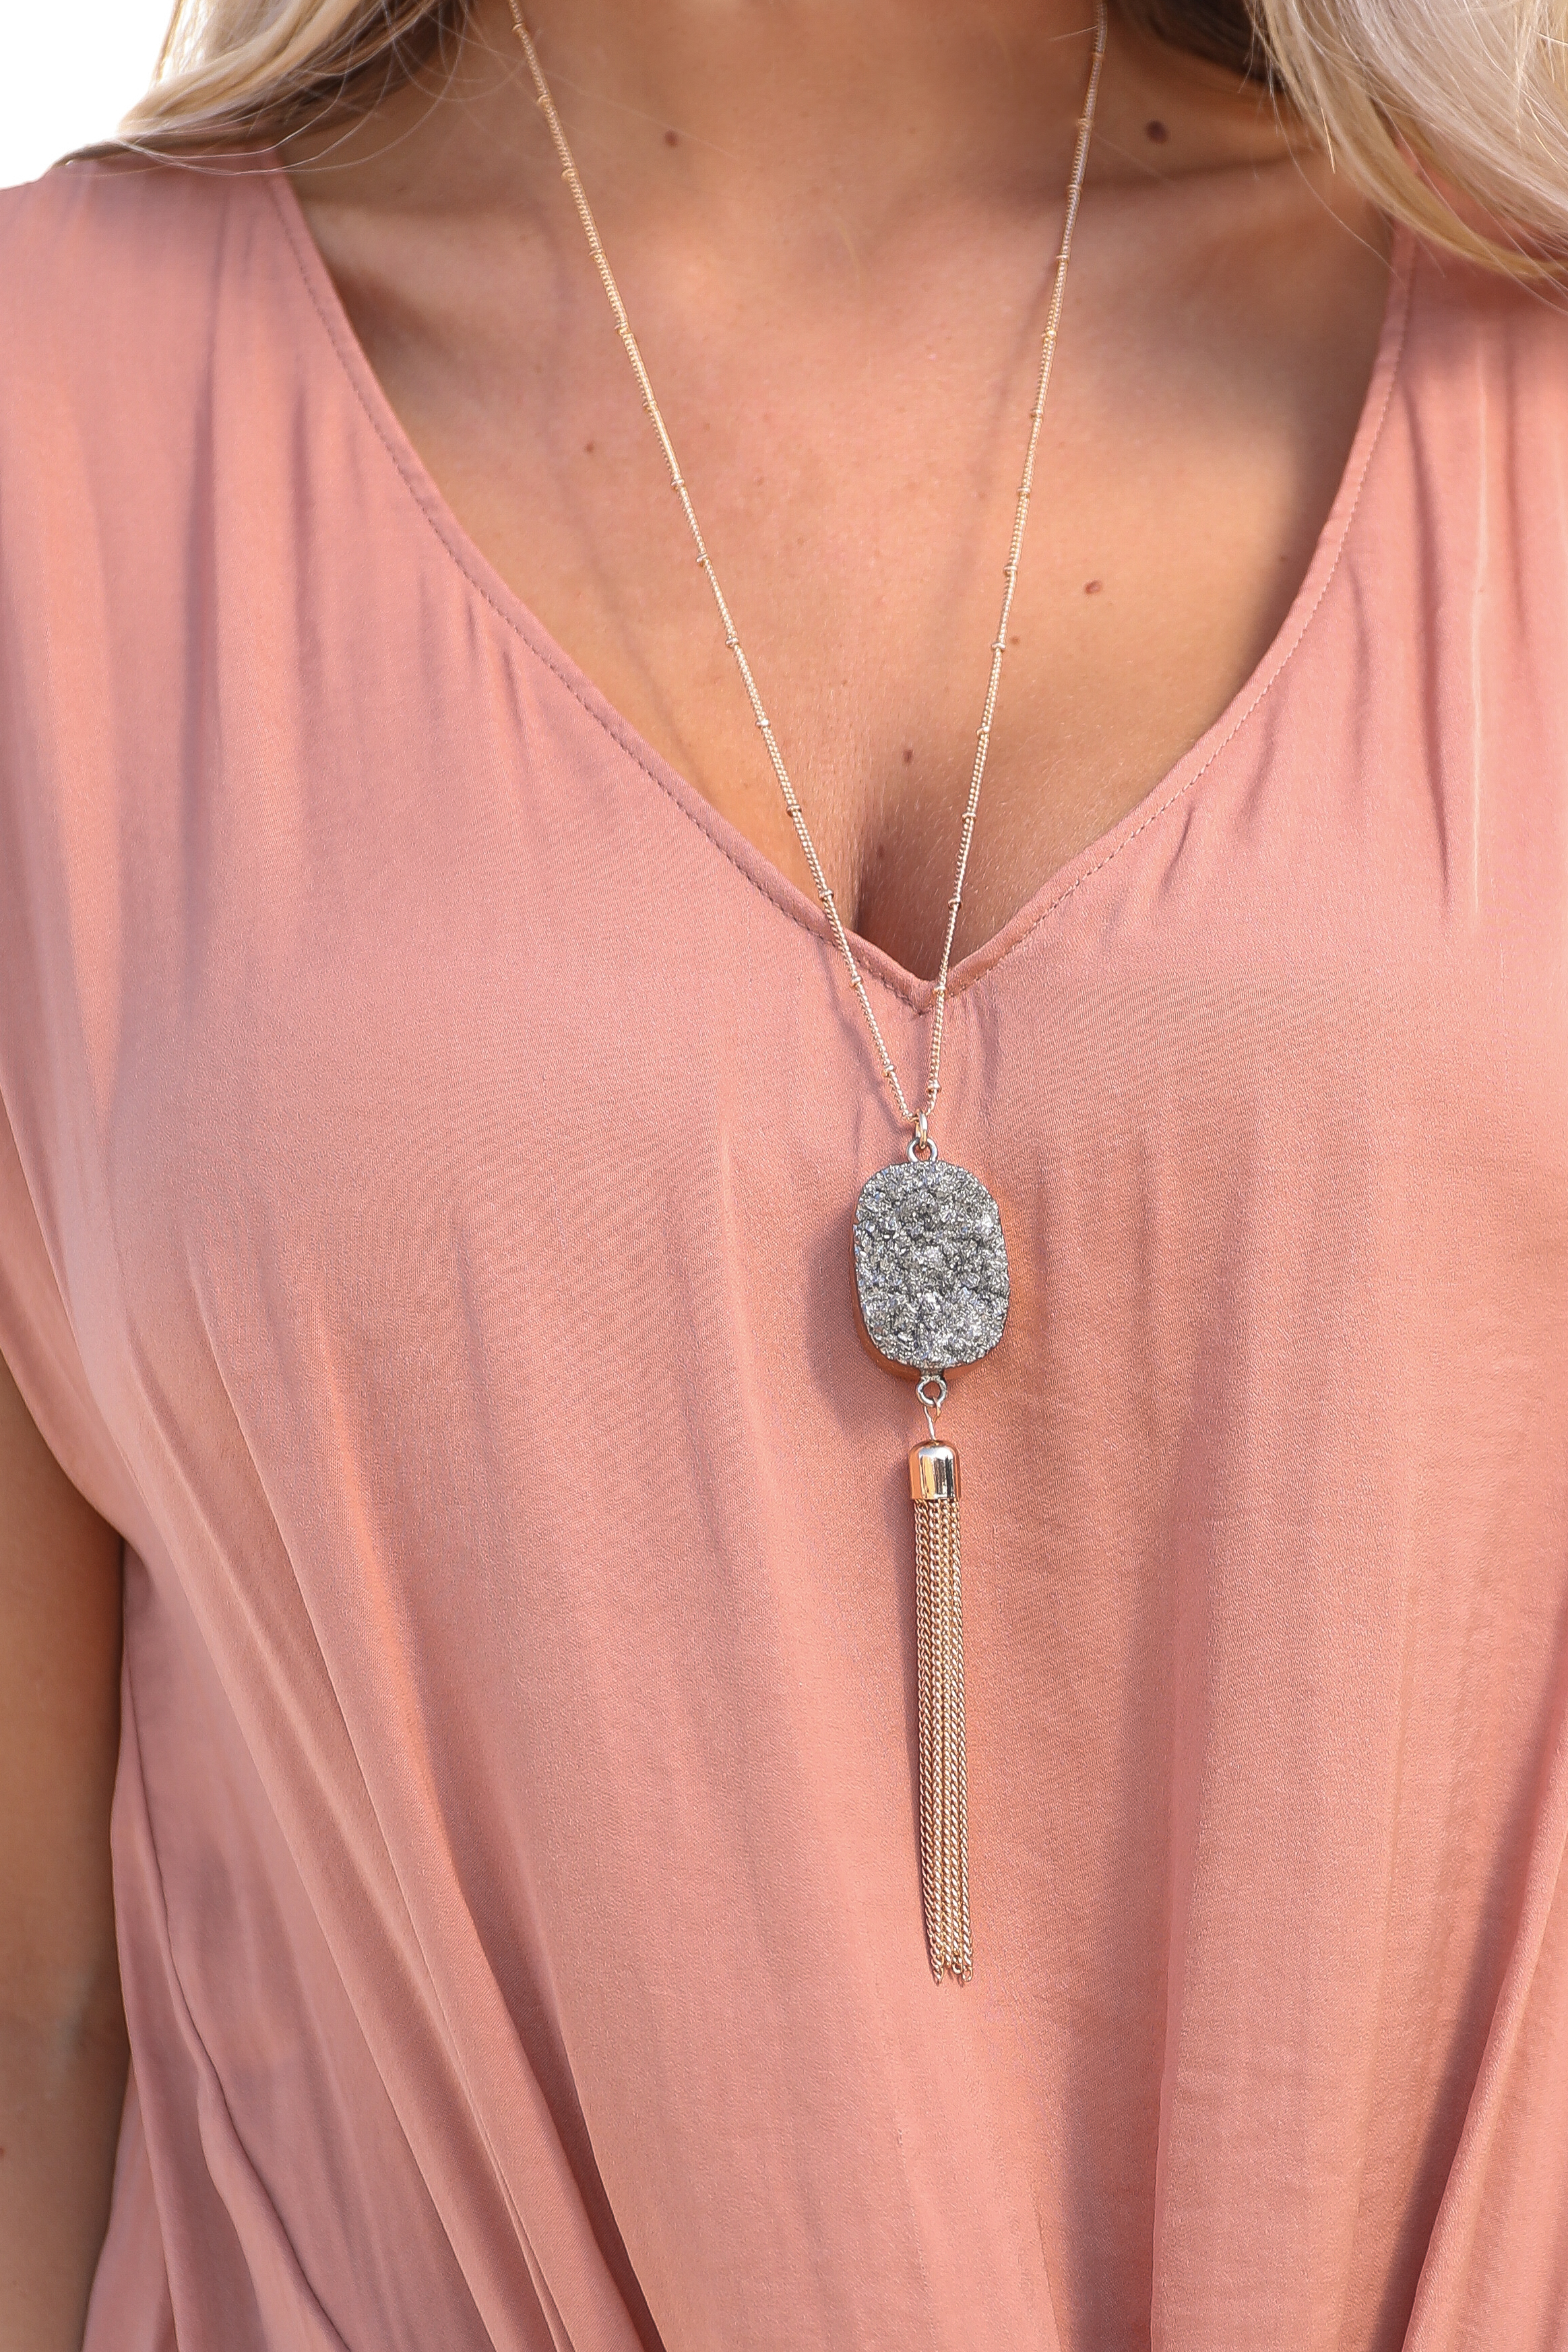 Gold Long Necklace with Druzy Hematite Pendant and Tassel